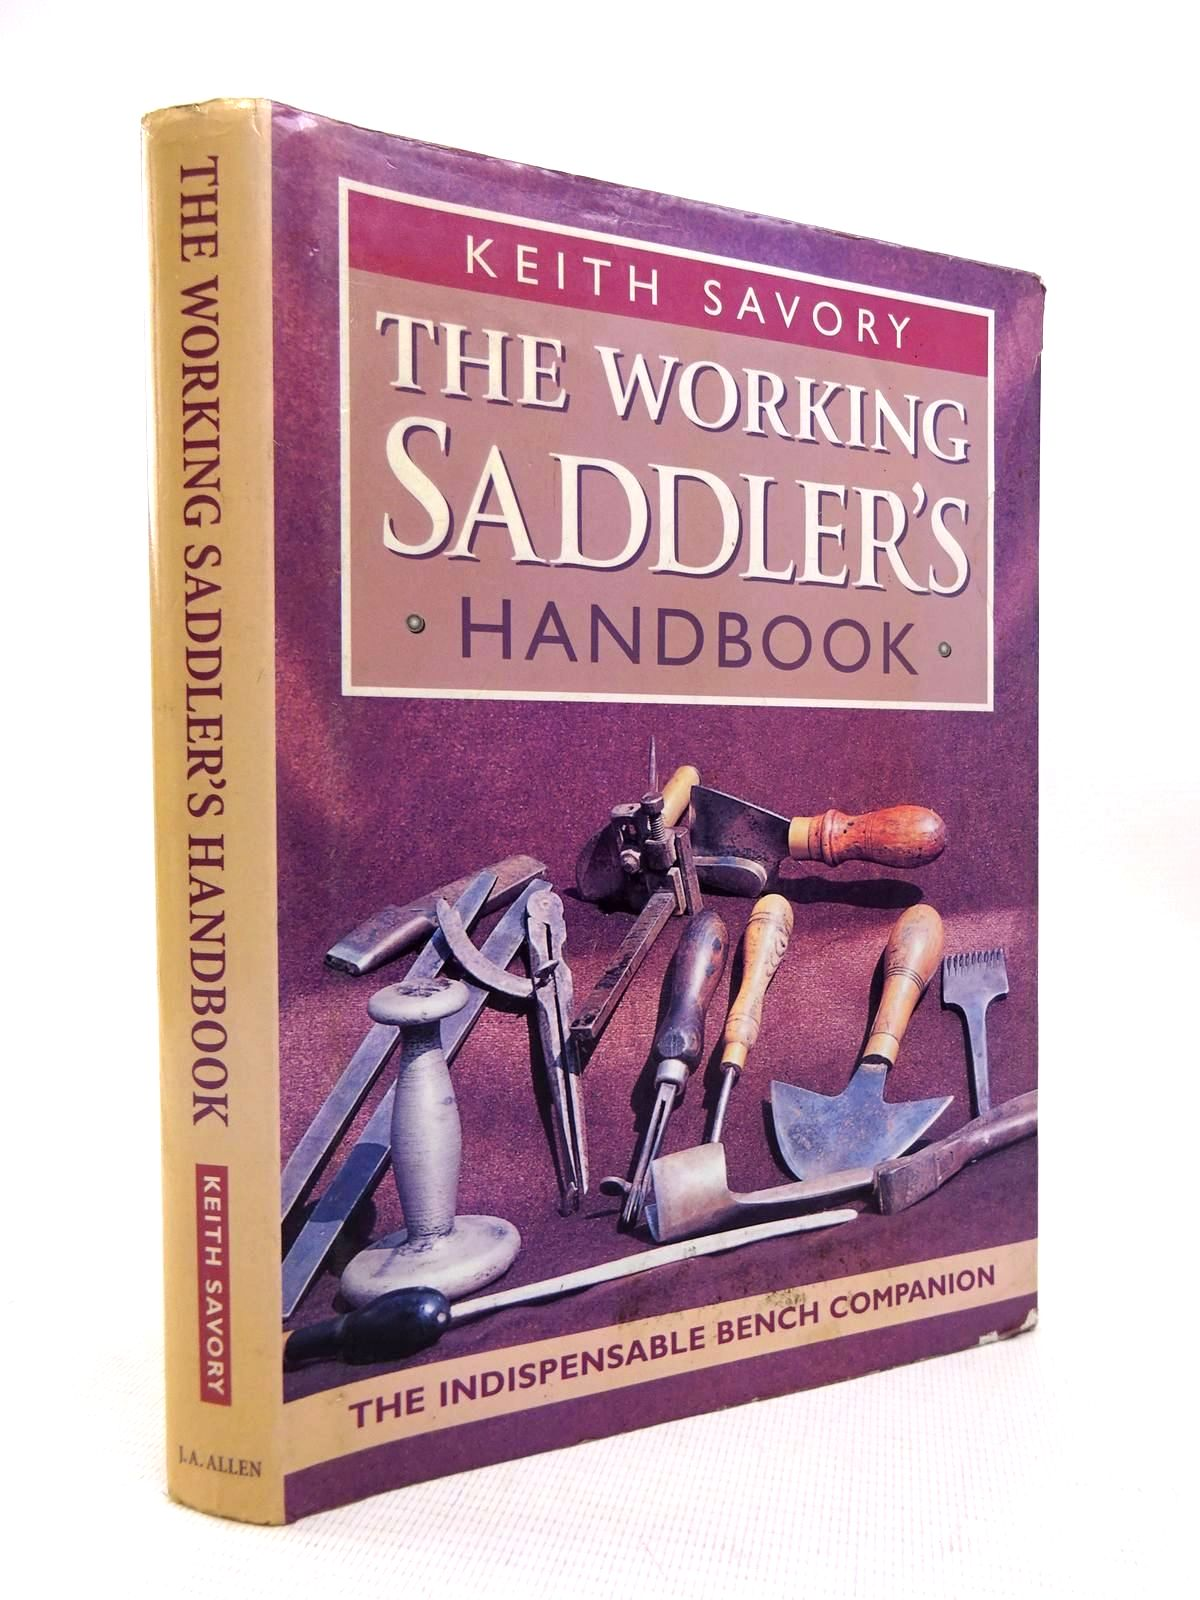 Photo of THE WORKING SADDLER'S HANDBOOK written by Savory, Keith published by J.A. Allen (STOCK CODE: 1816356)  for sale by Stella & Rose's Books